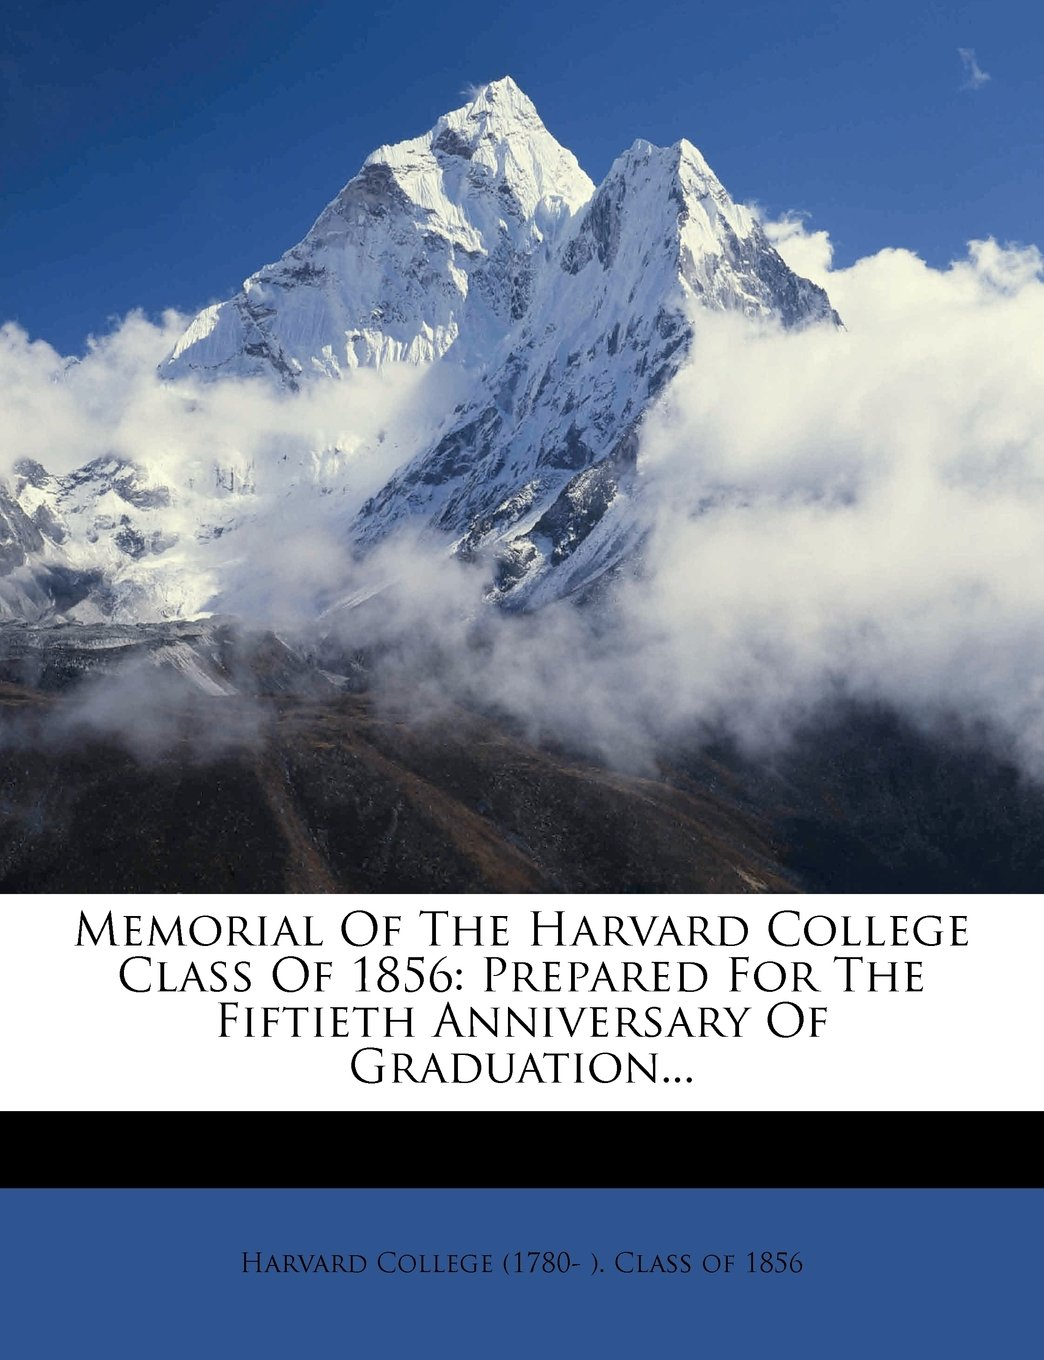 Memorial of the Harvard College Class of 1856: Prepared for the Fiftieth Anniversary of Graduation... ebook